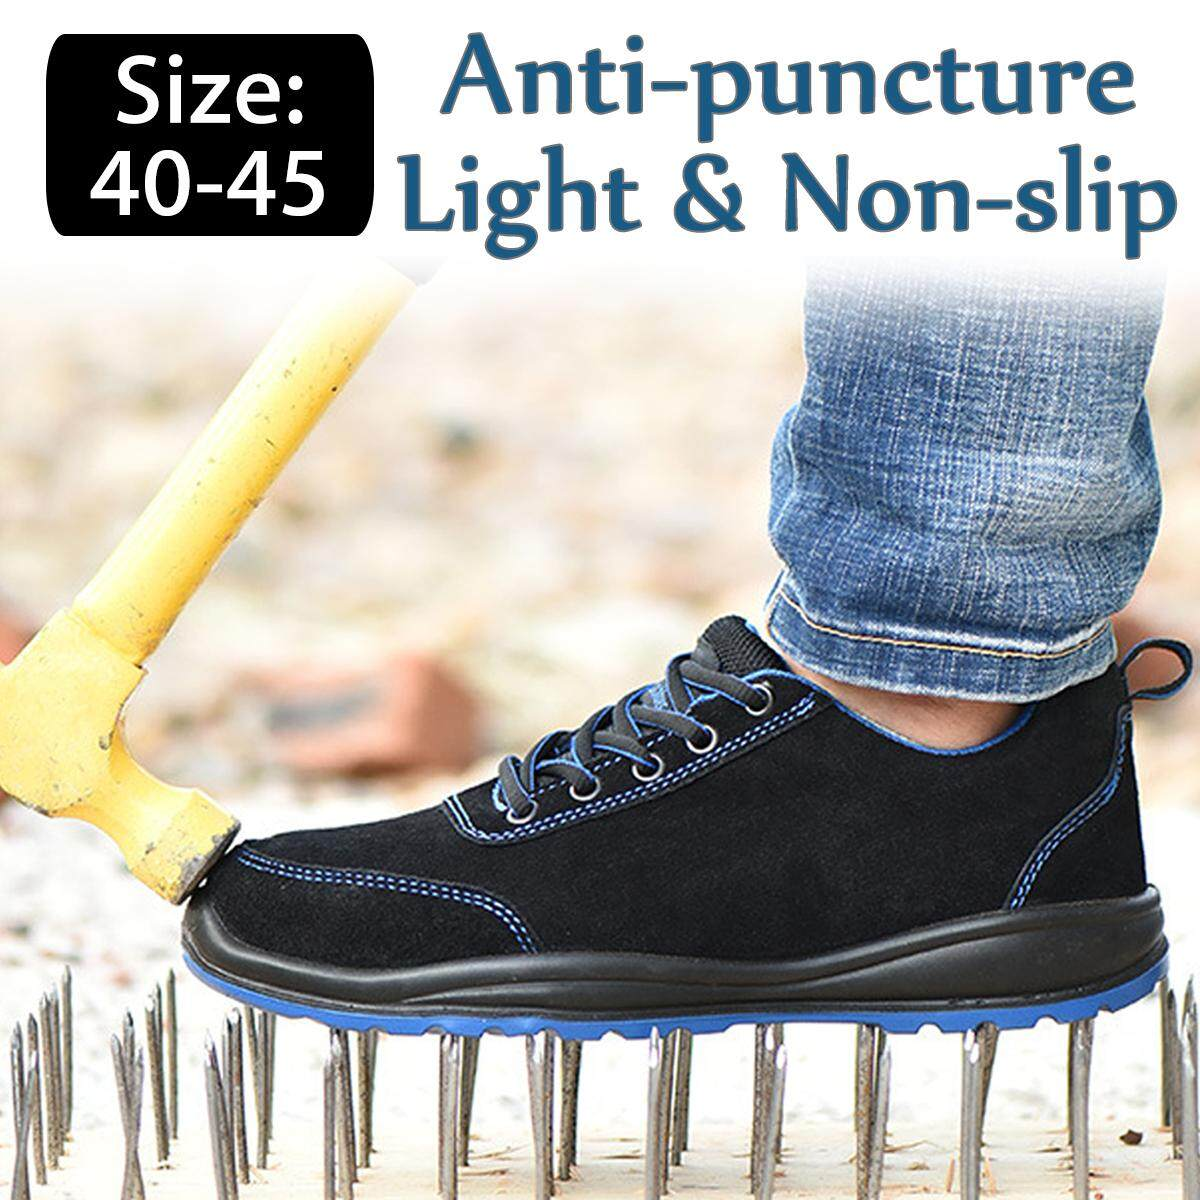 【Free Shipping + Flash Deal】Mens Safety Work Shoes Steel Toe Cap loafers Fashion Trainer Climbing New Boots